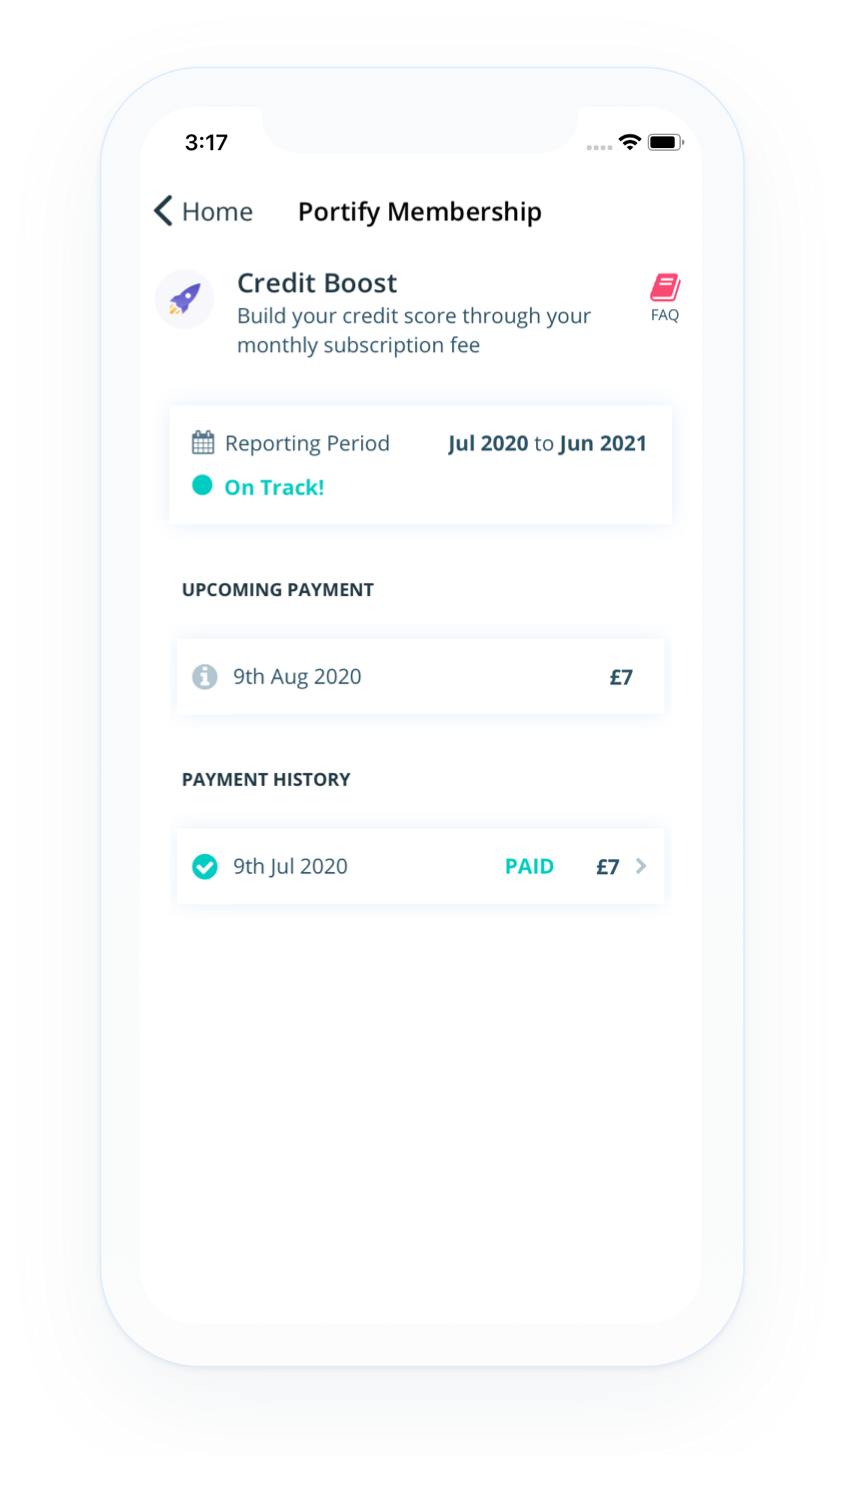 Screenshot of Credit Boost homepage from credit builder app Portify